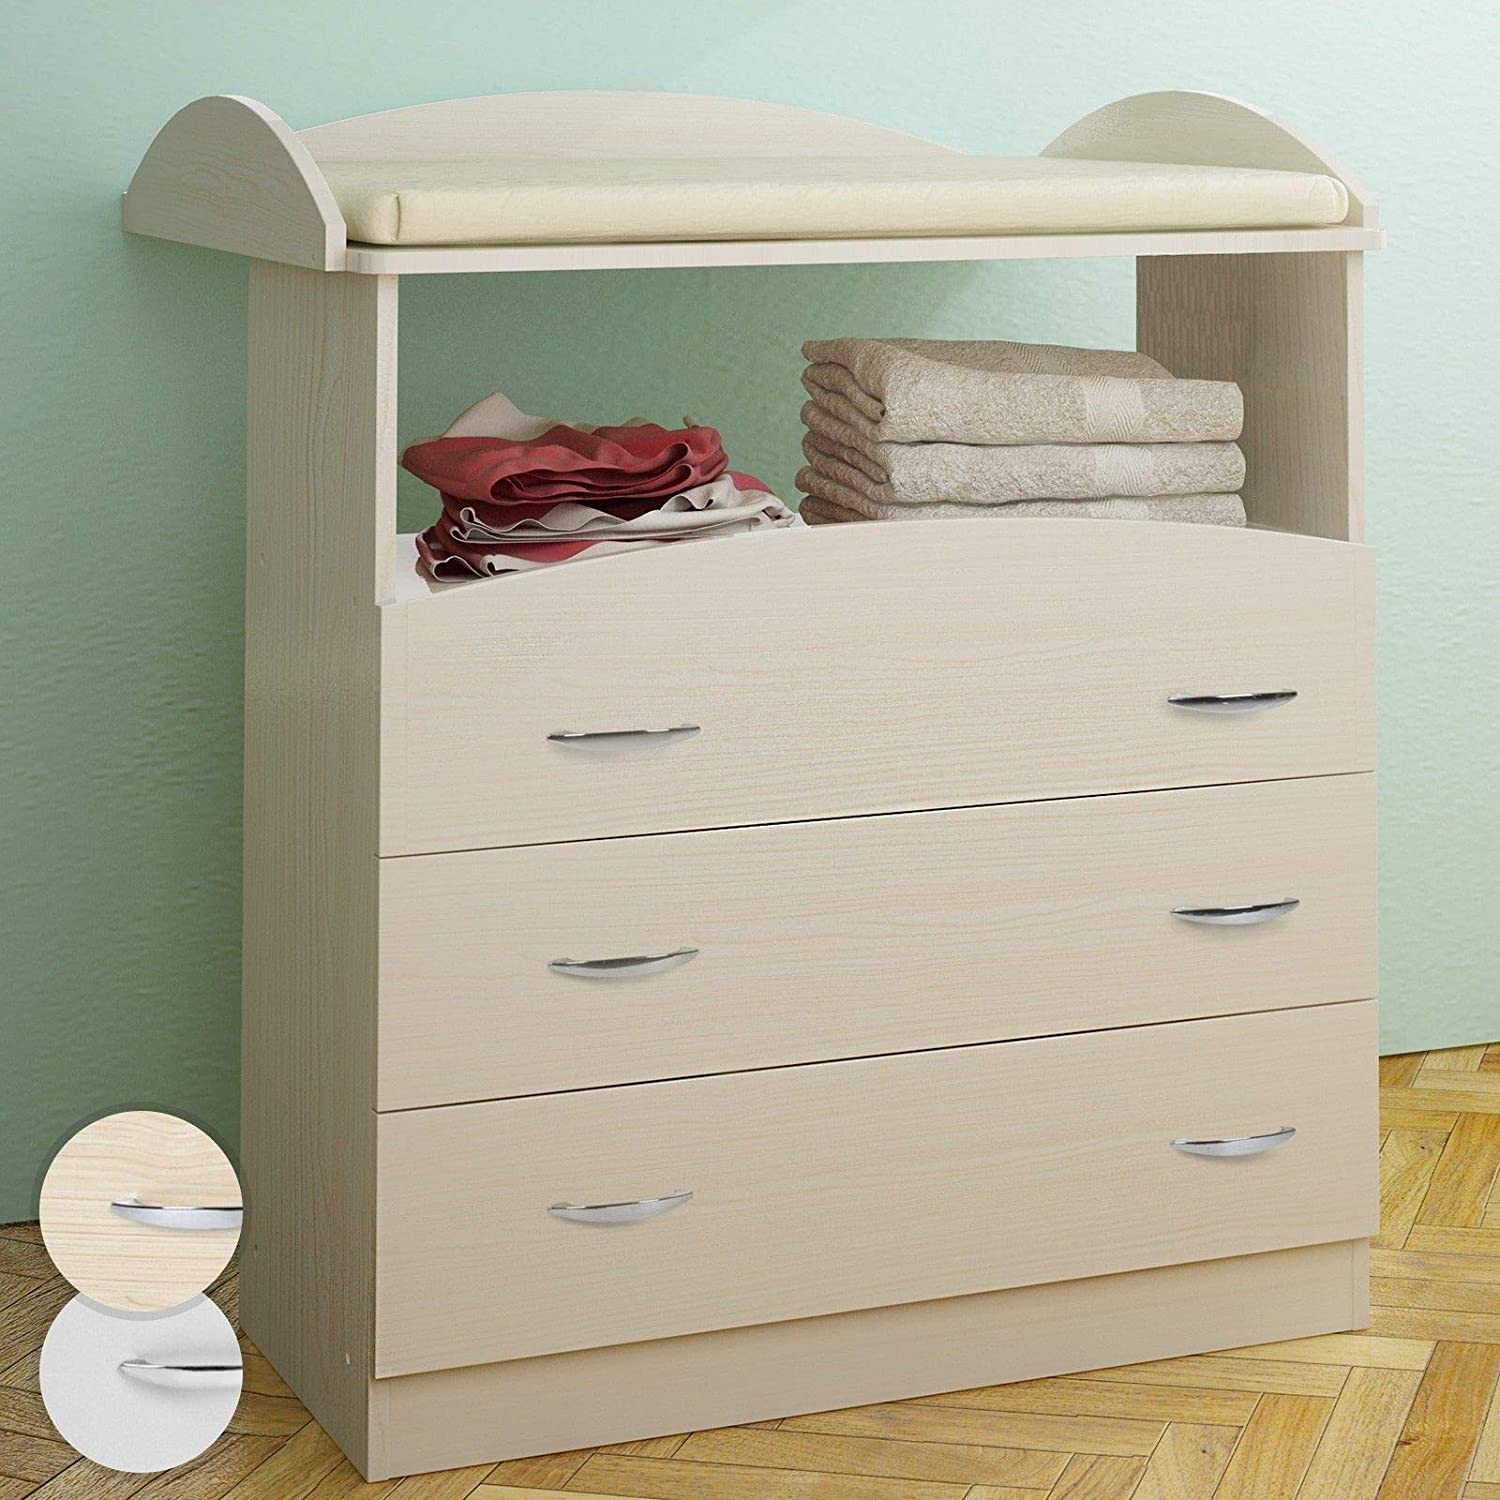 Baby Changing Table Unit 3 Drawers Chest Storage Nursery Furniture